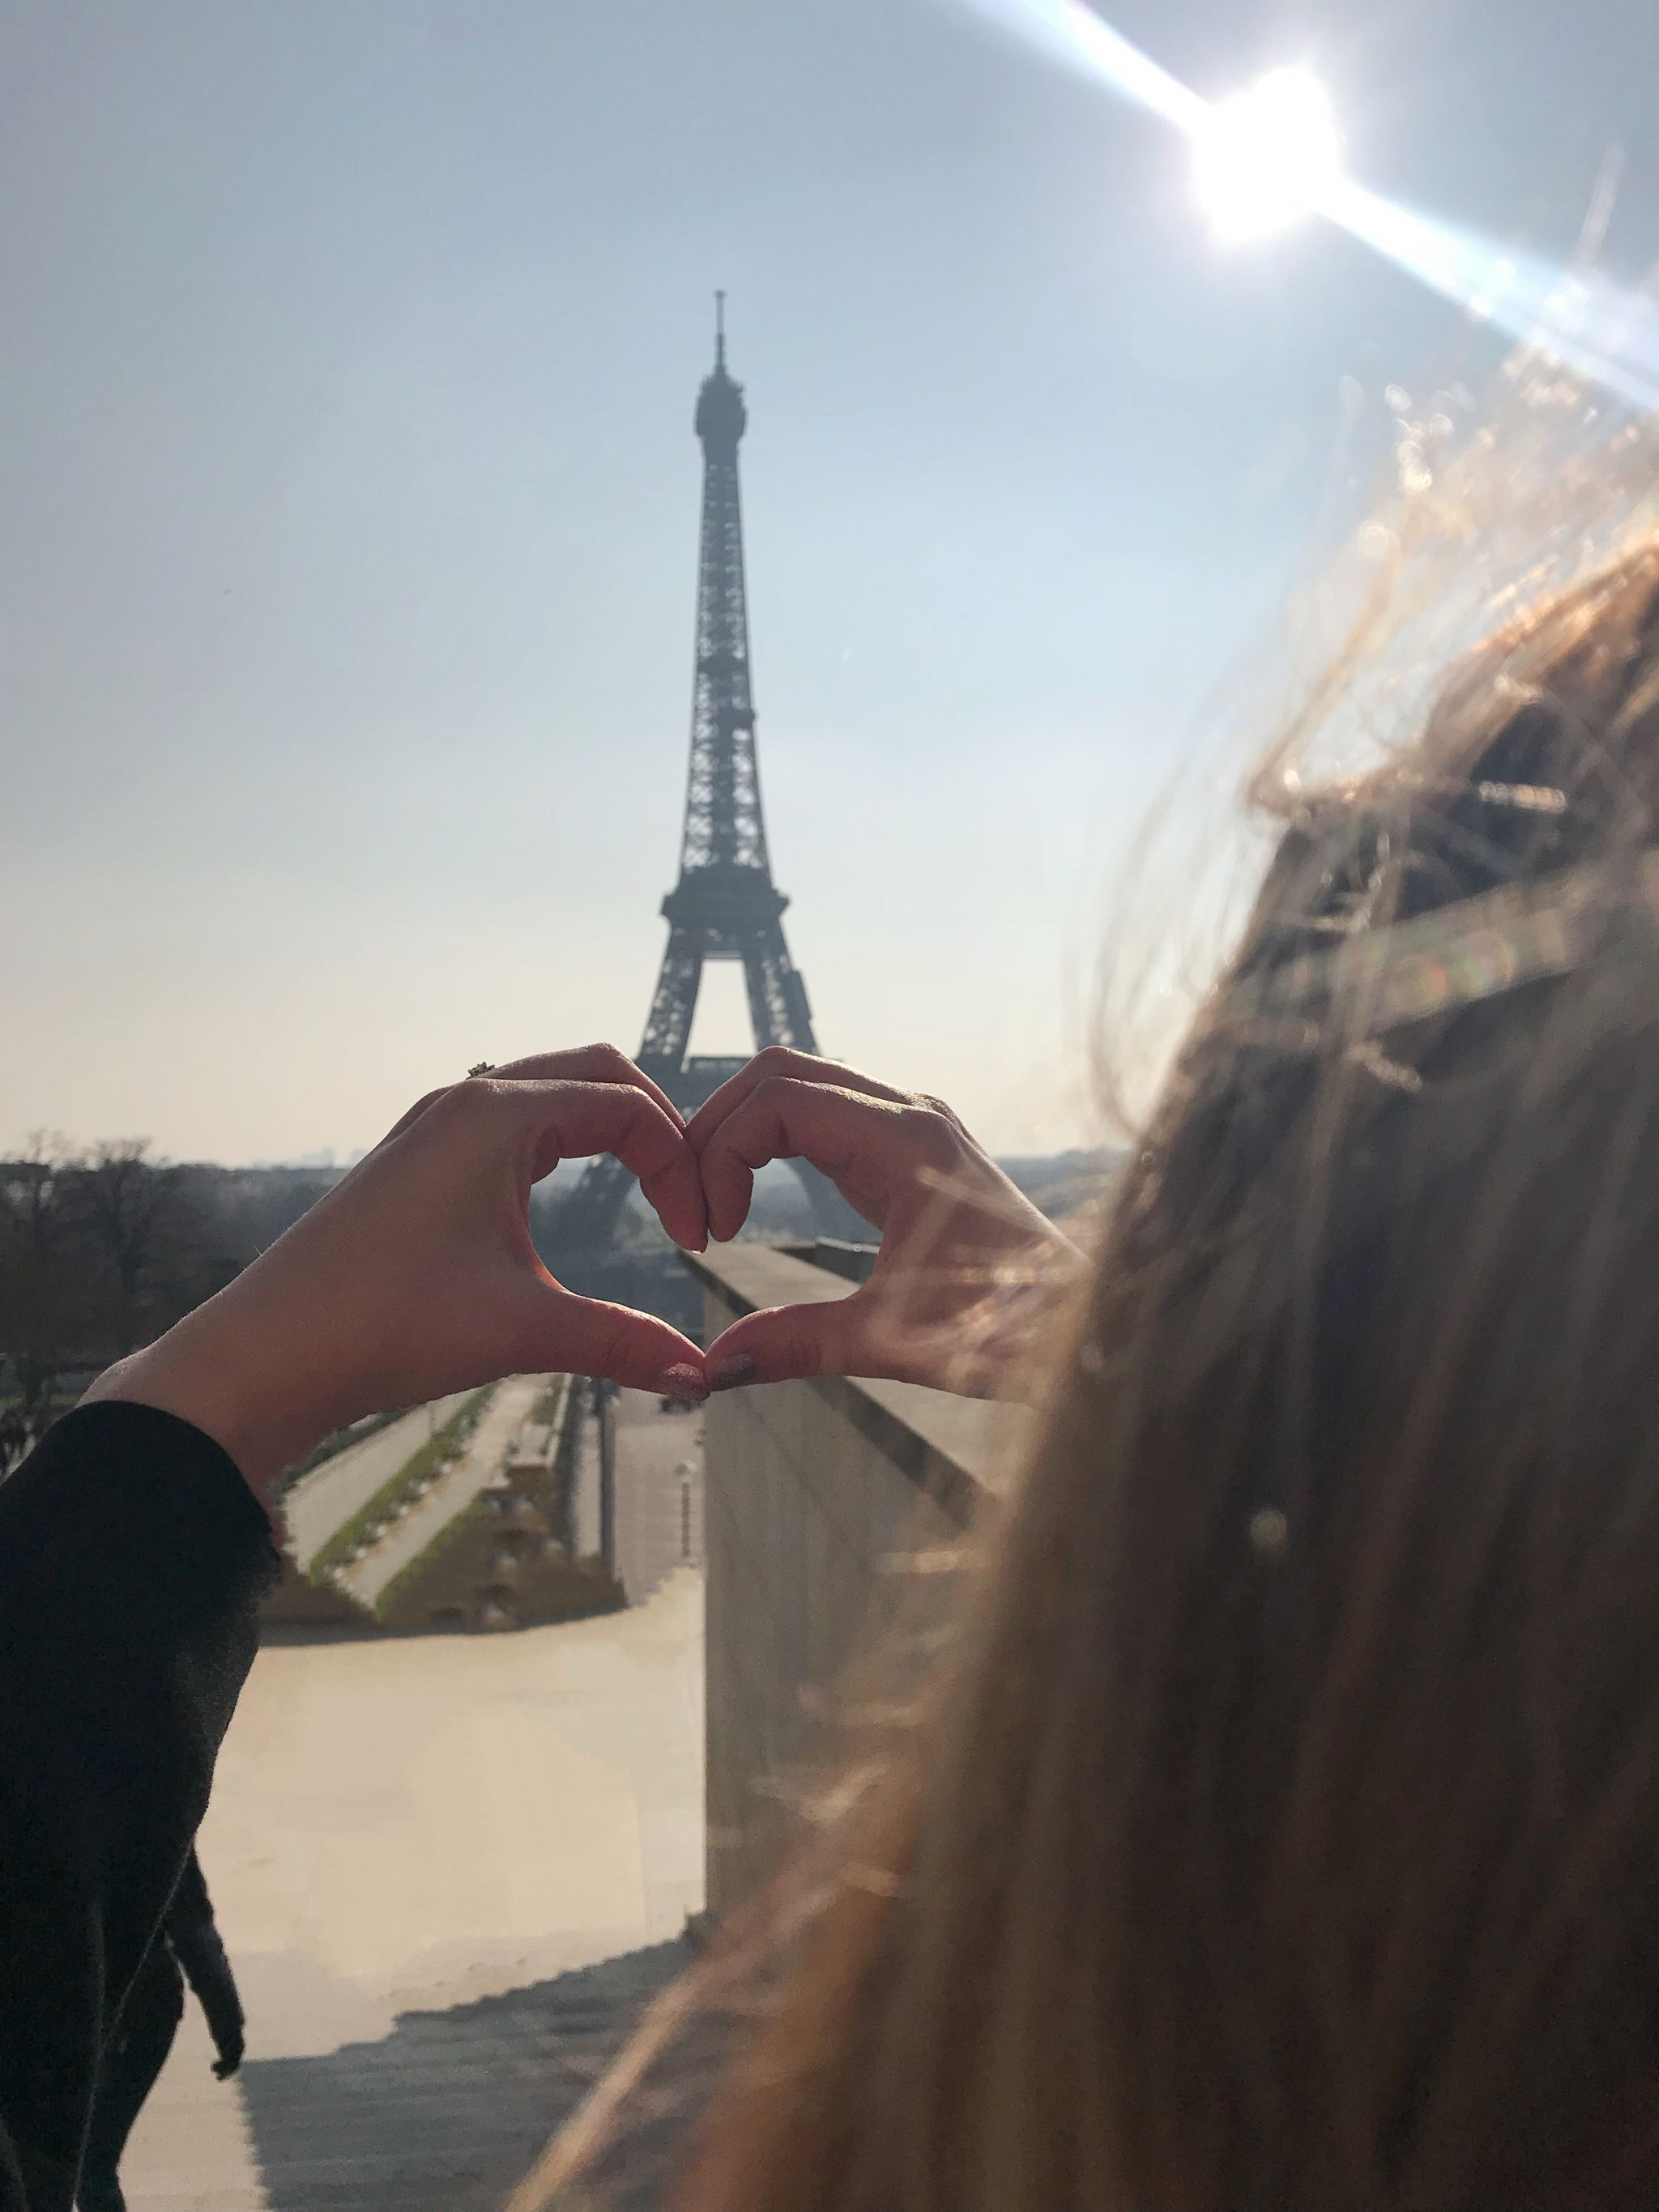 From Paris with love making heart shapes at the Eiffel Tower